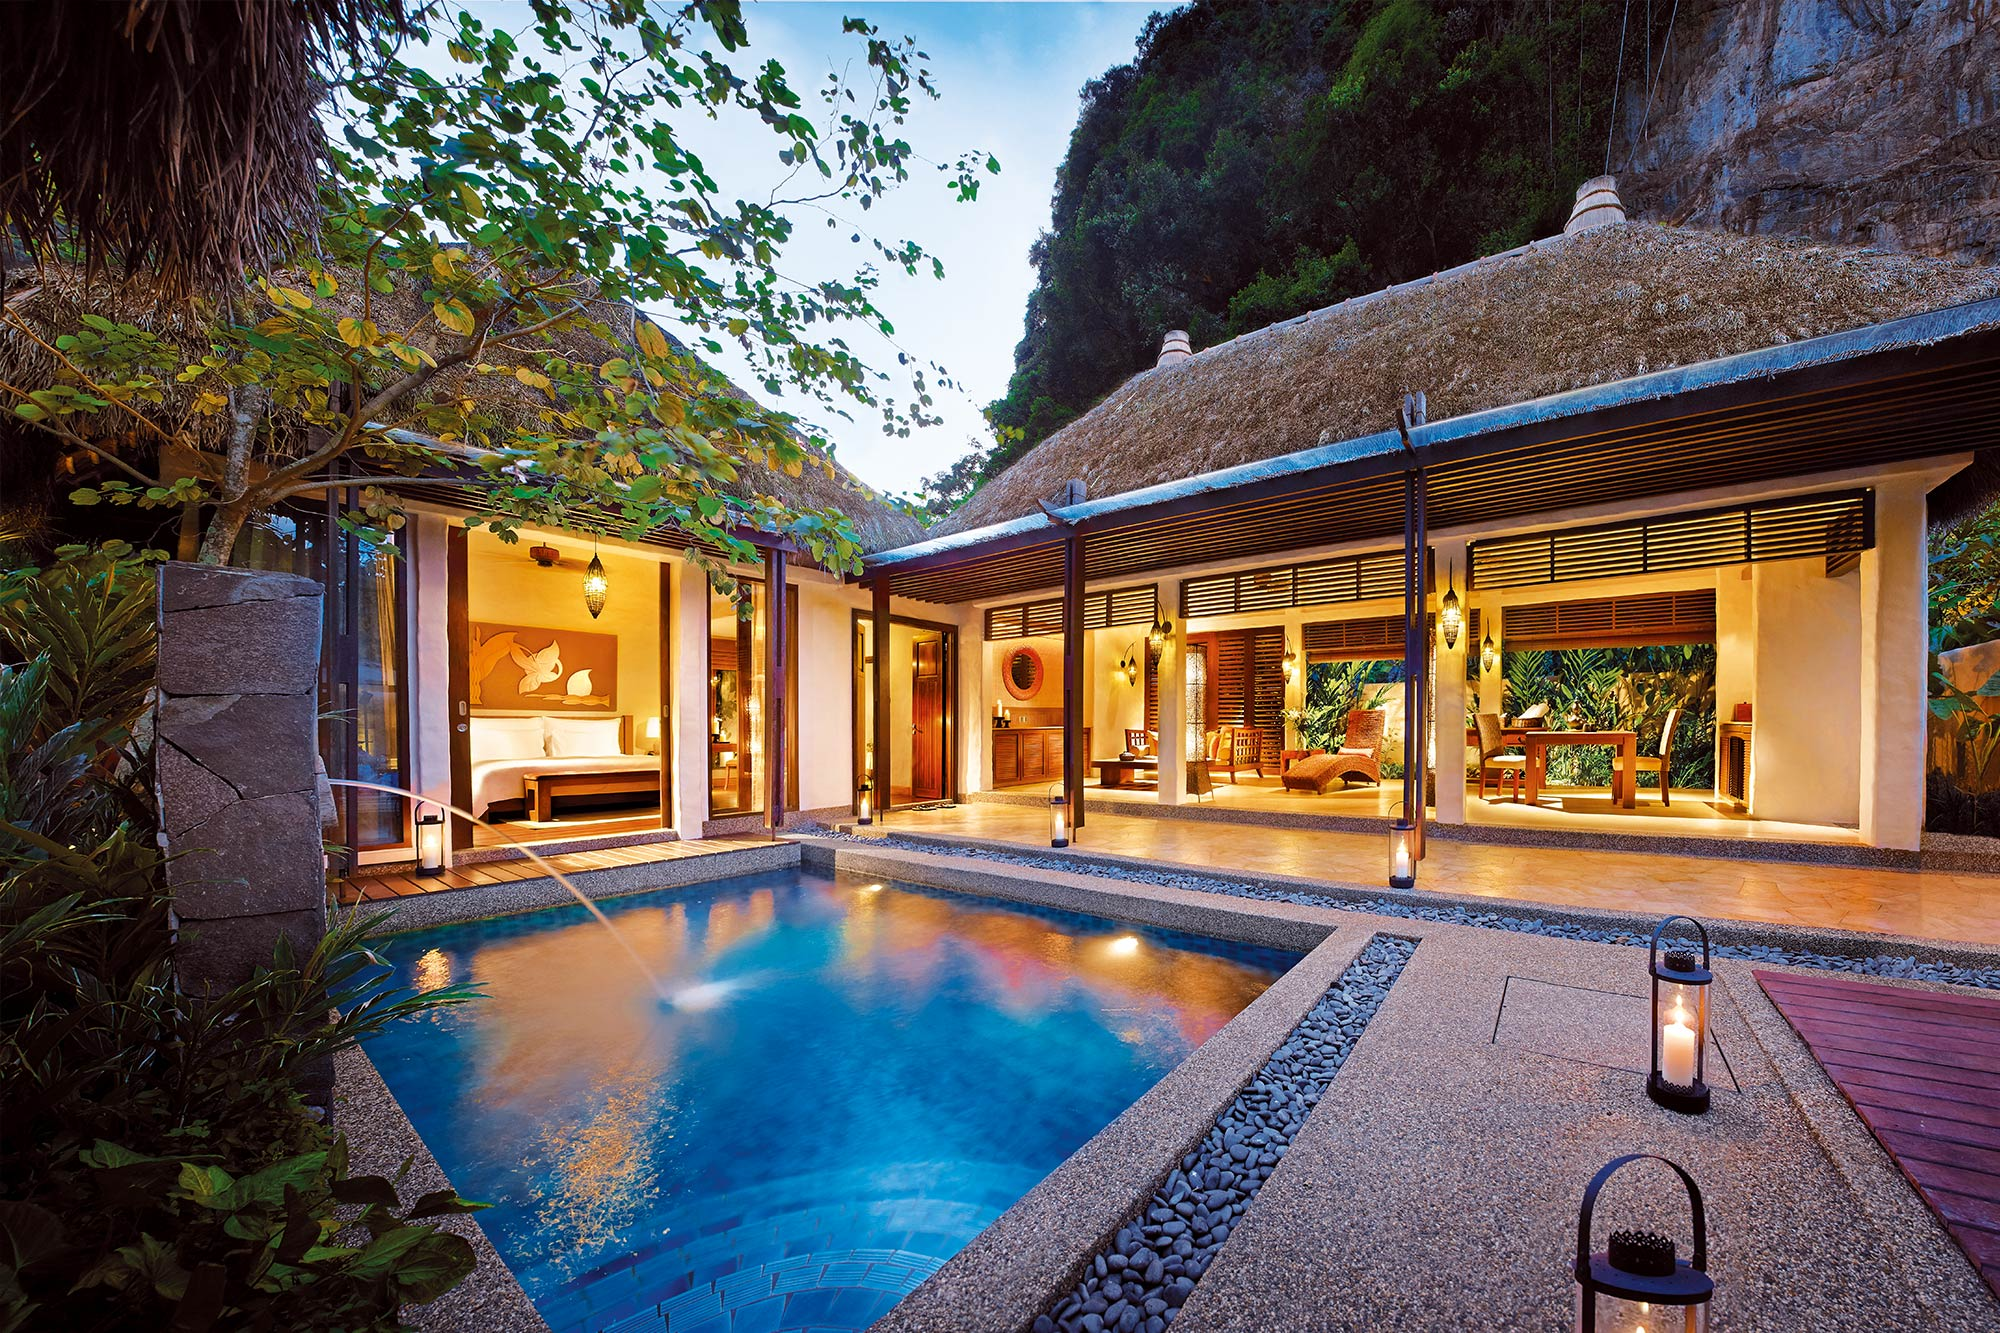 Banjaran_Hotsprings_Retreat_HeroImage2000x1333.jpg